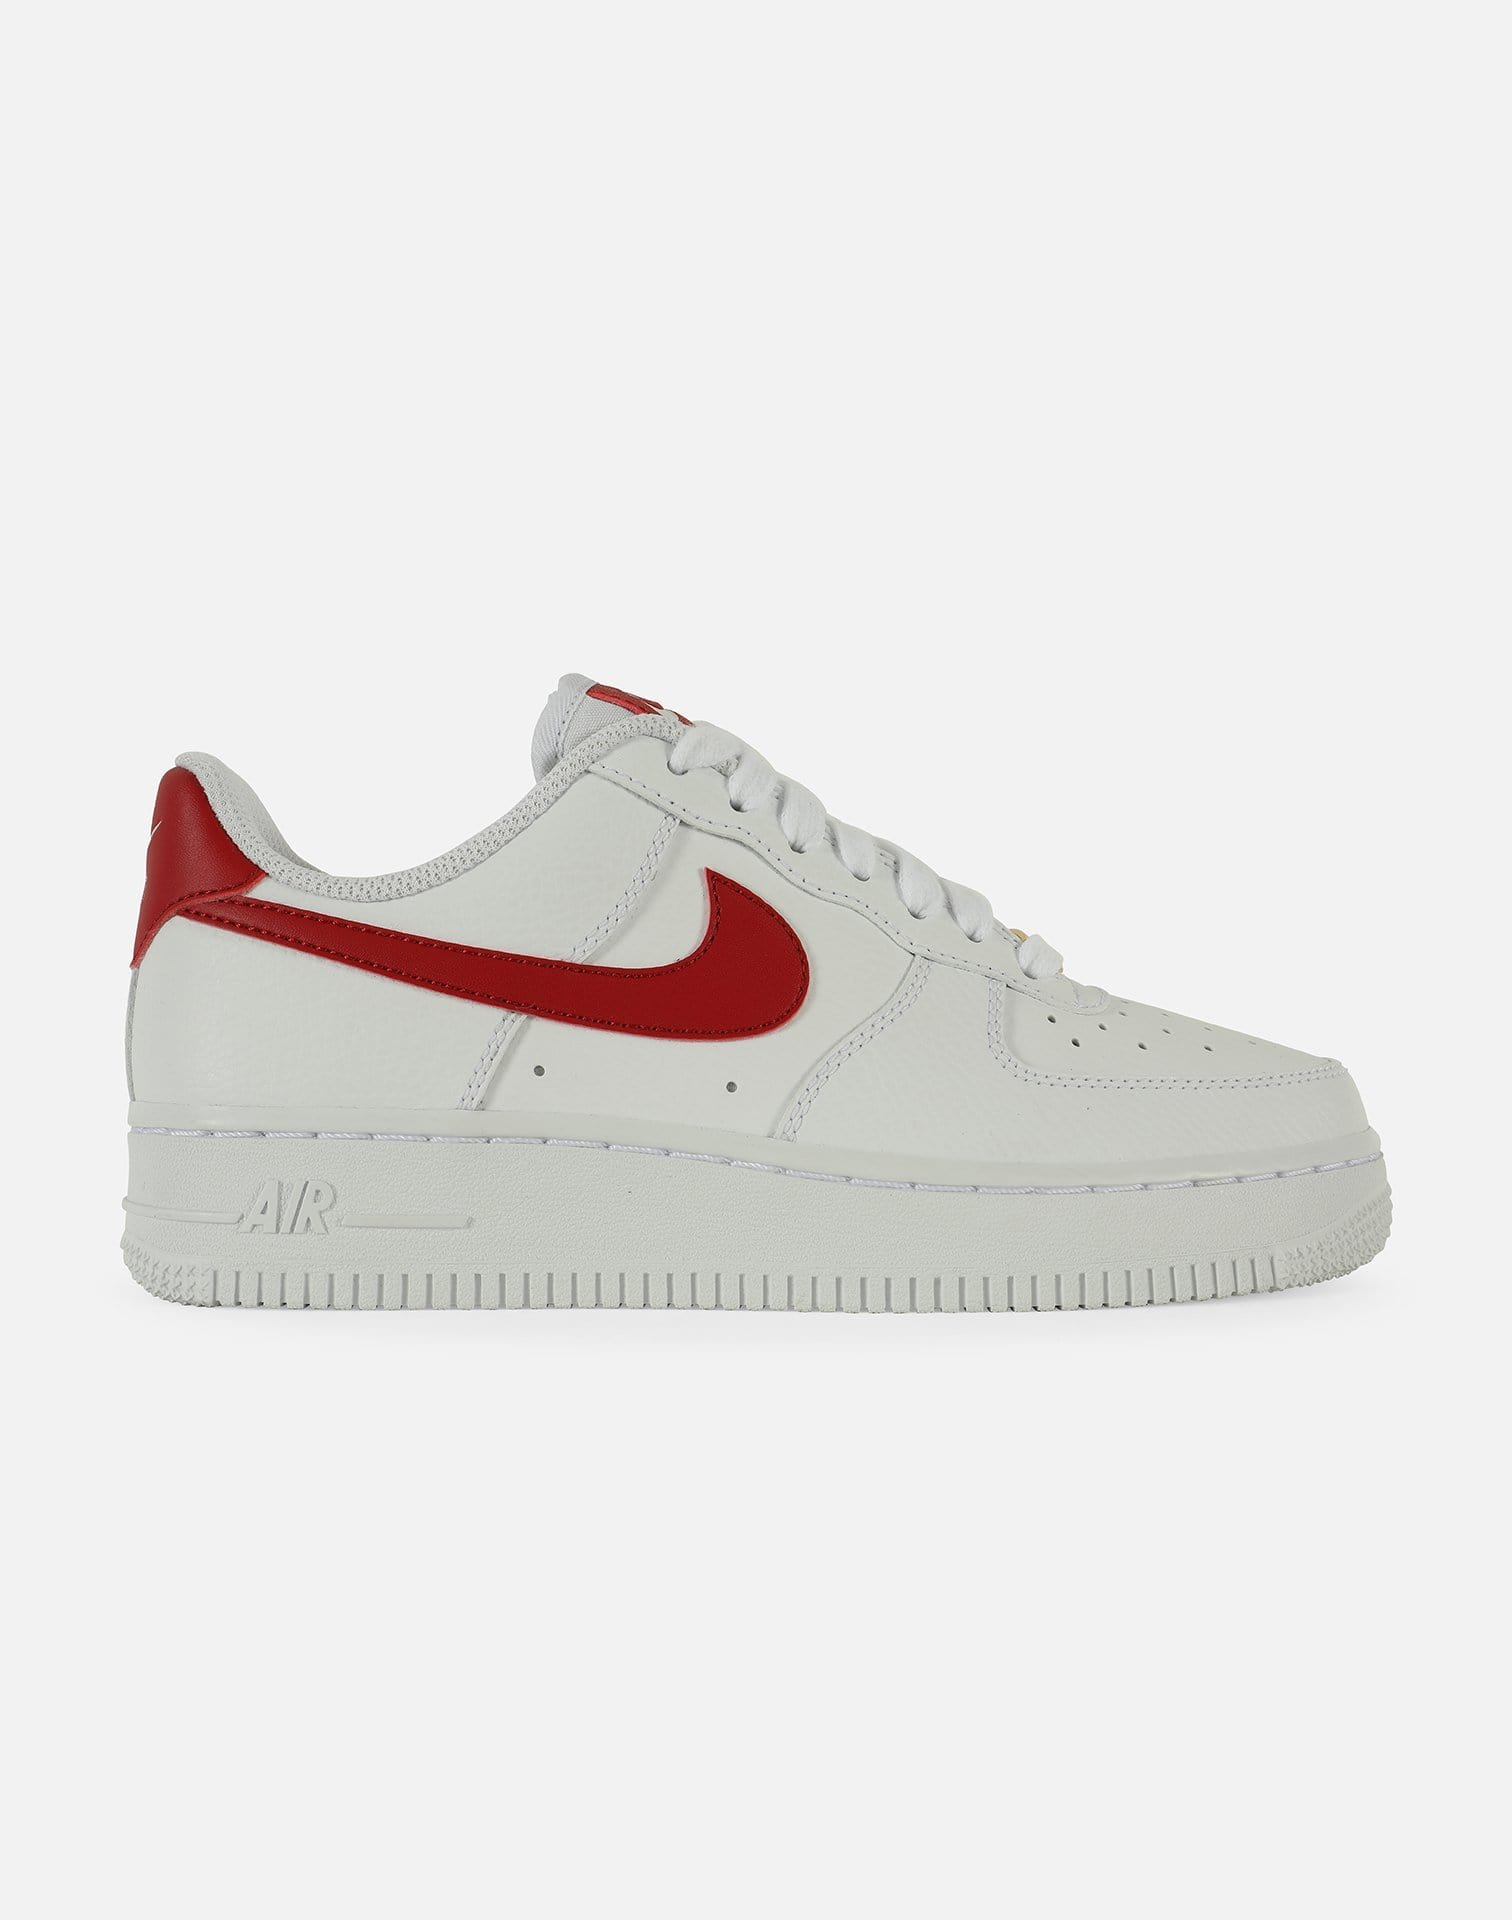 Nike Women's Air Force 1 '07 Low